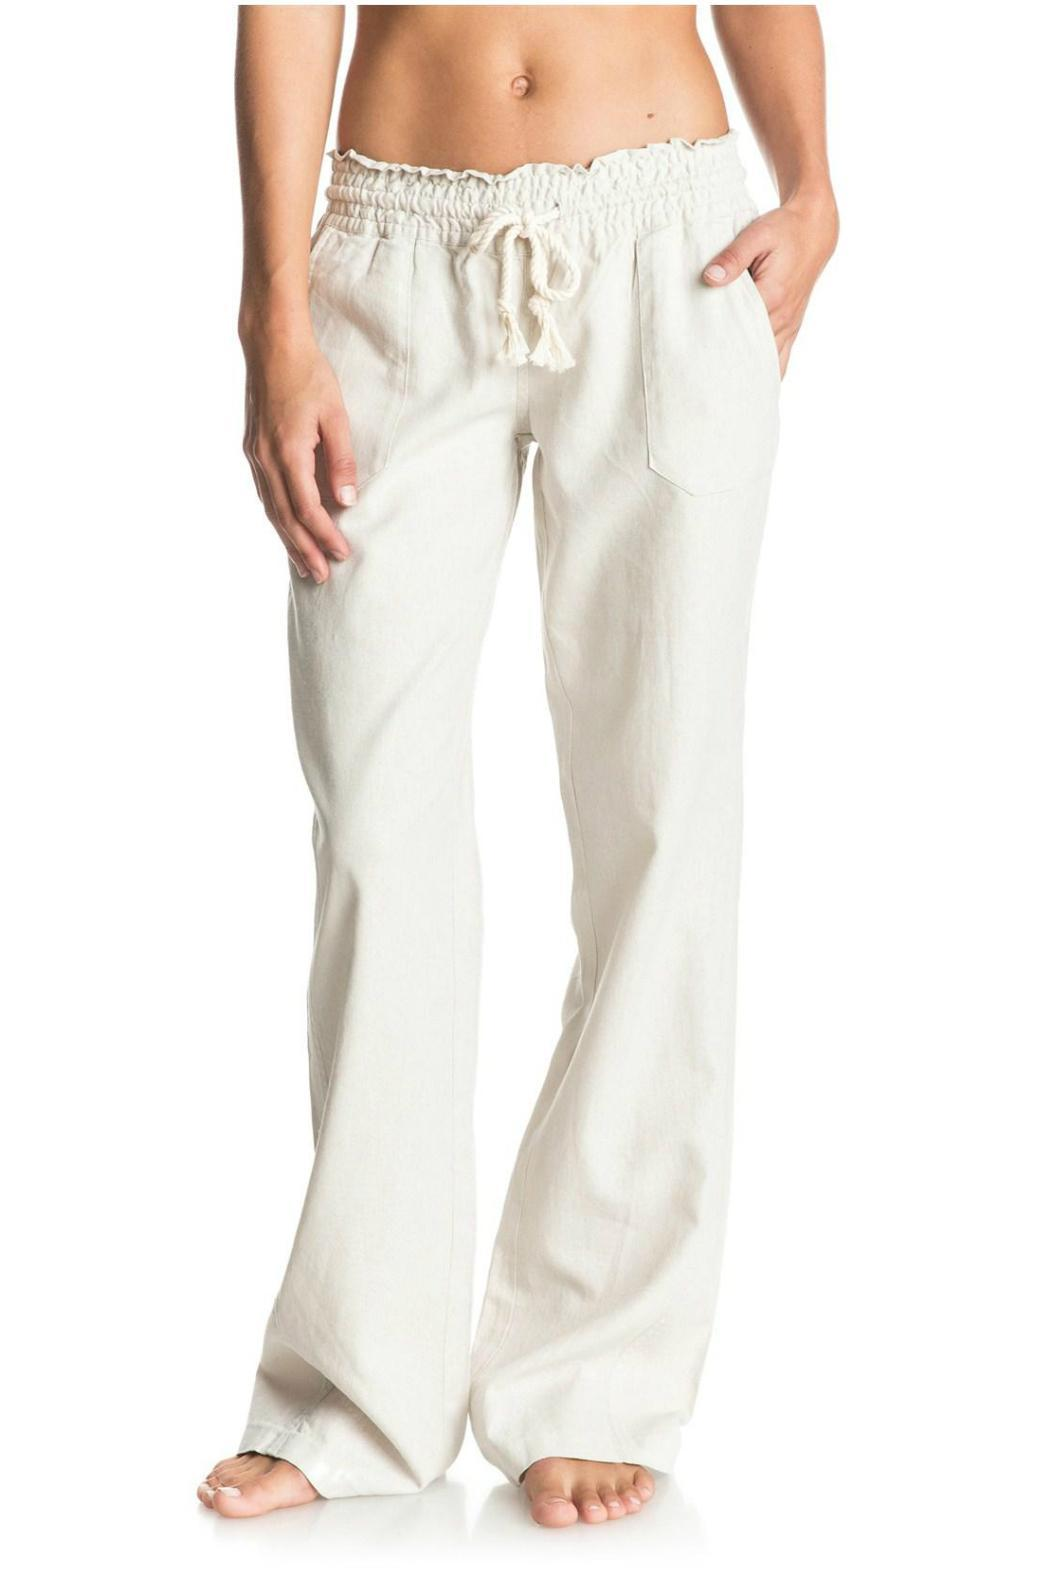 19f0848a53 Roxy Oceanside Beach Pant from Minnesota by Big Island Swim & Surf ...